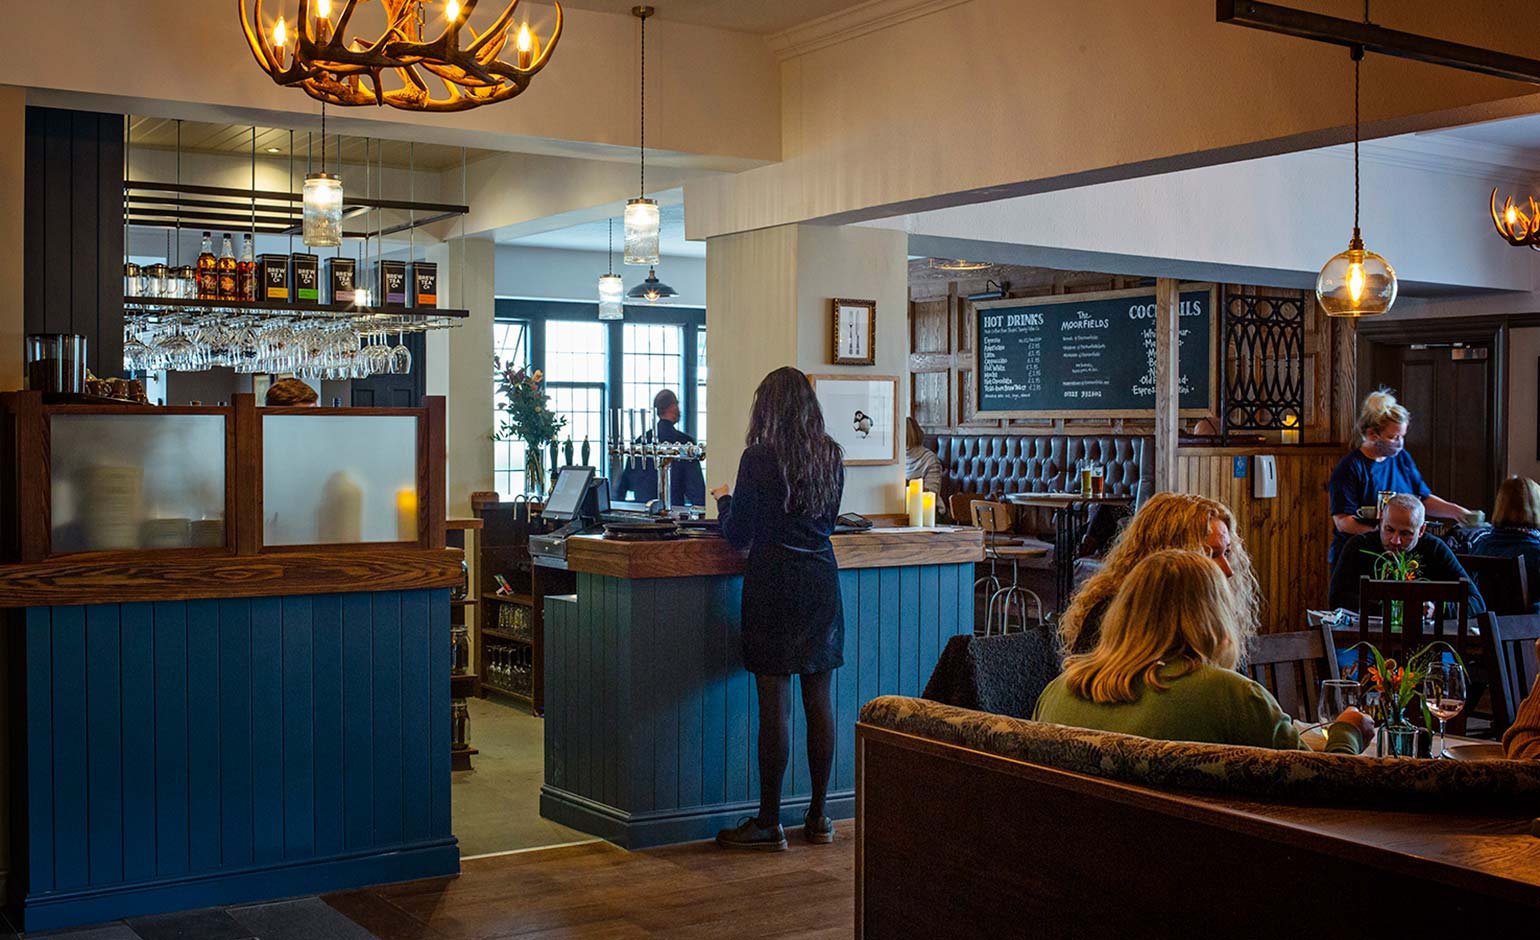 The Moorfields pub reopens its doors following £500,000 transformation